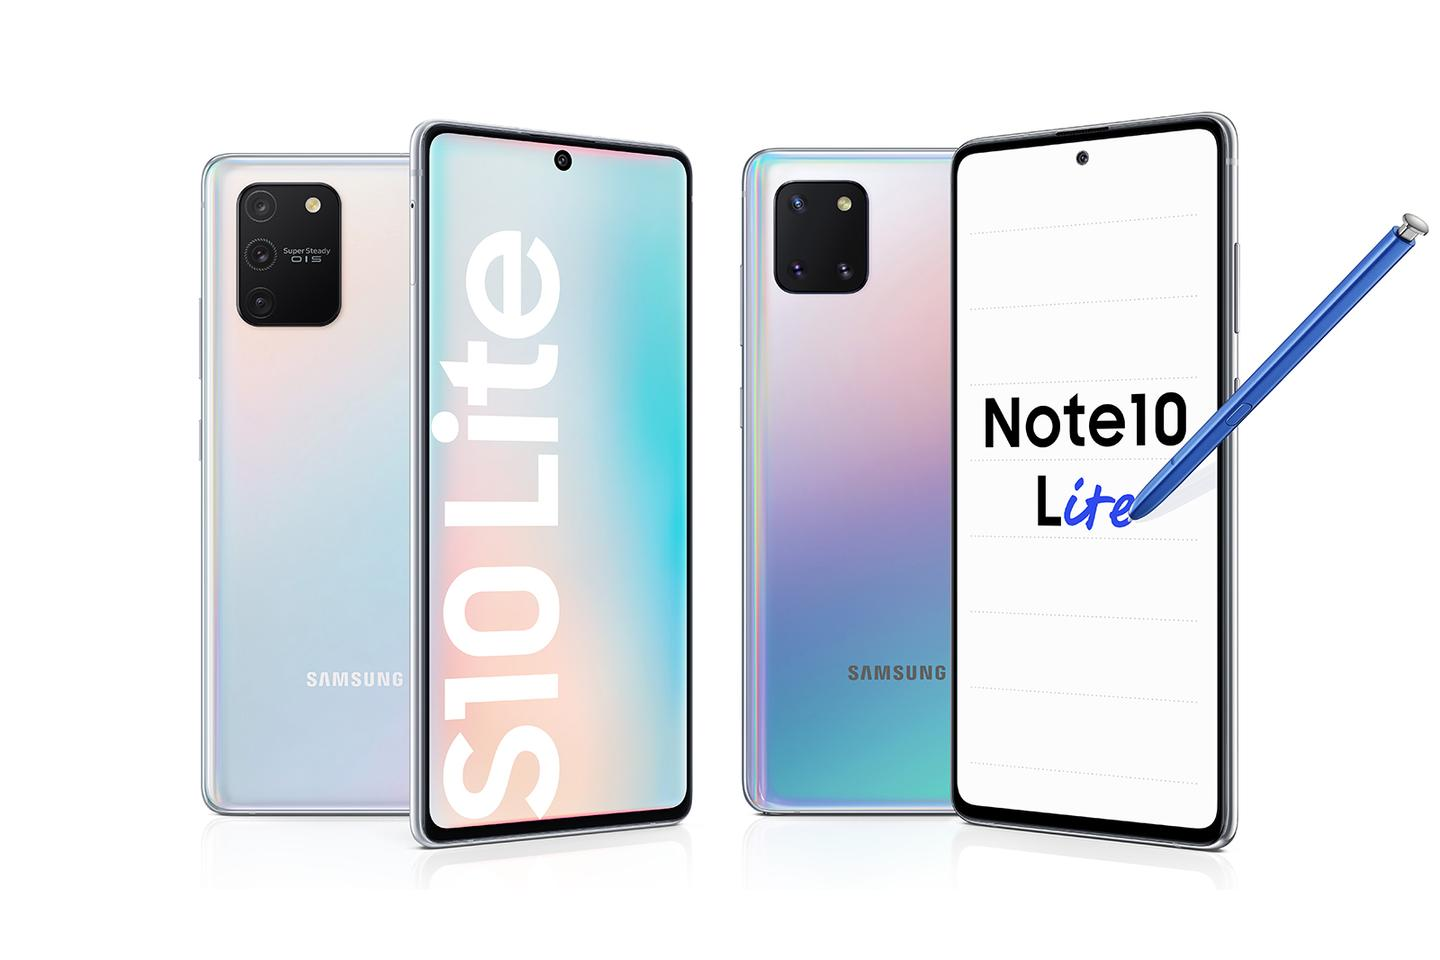 Samsung starts 2020 with two Lite handsets